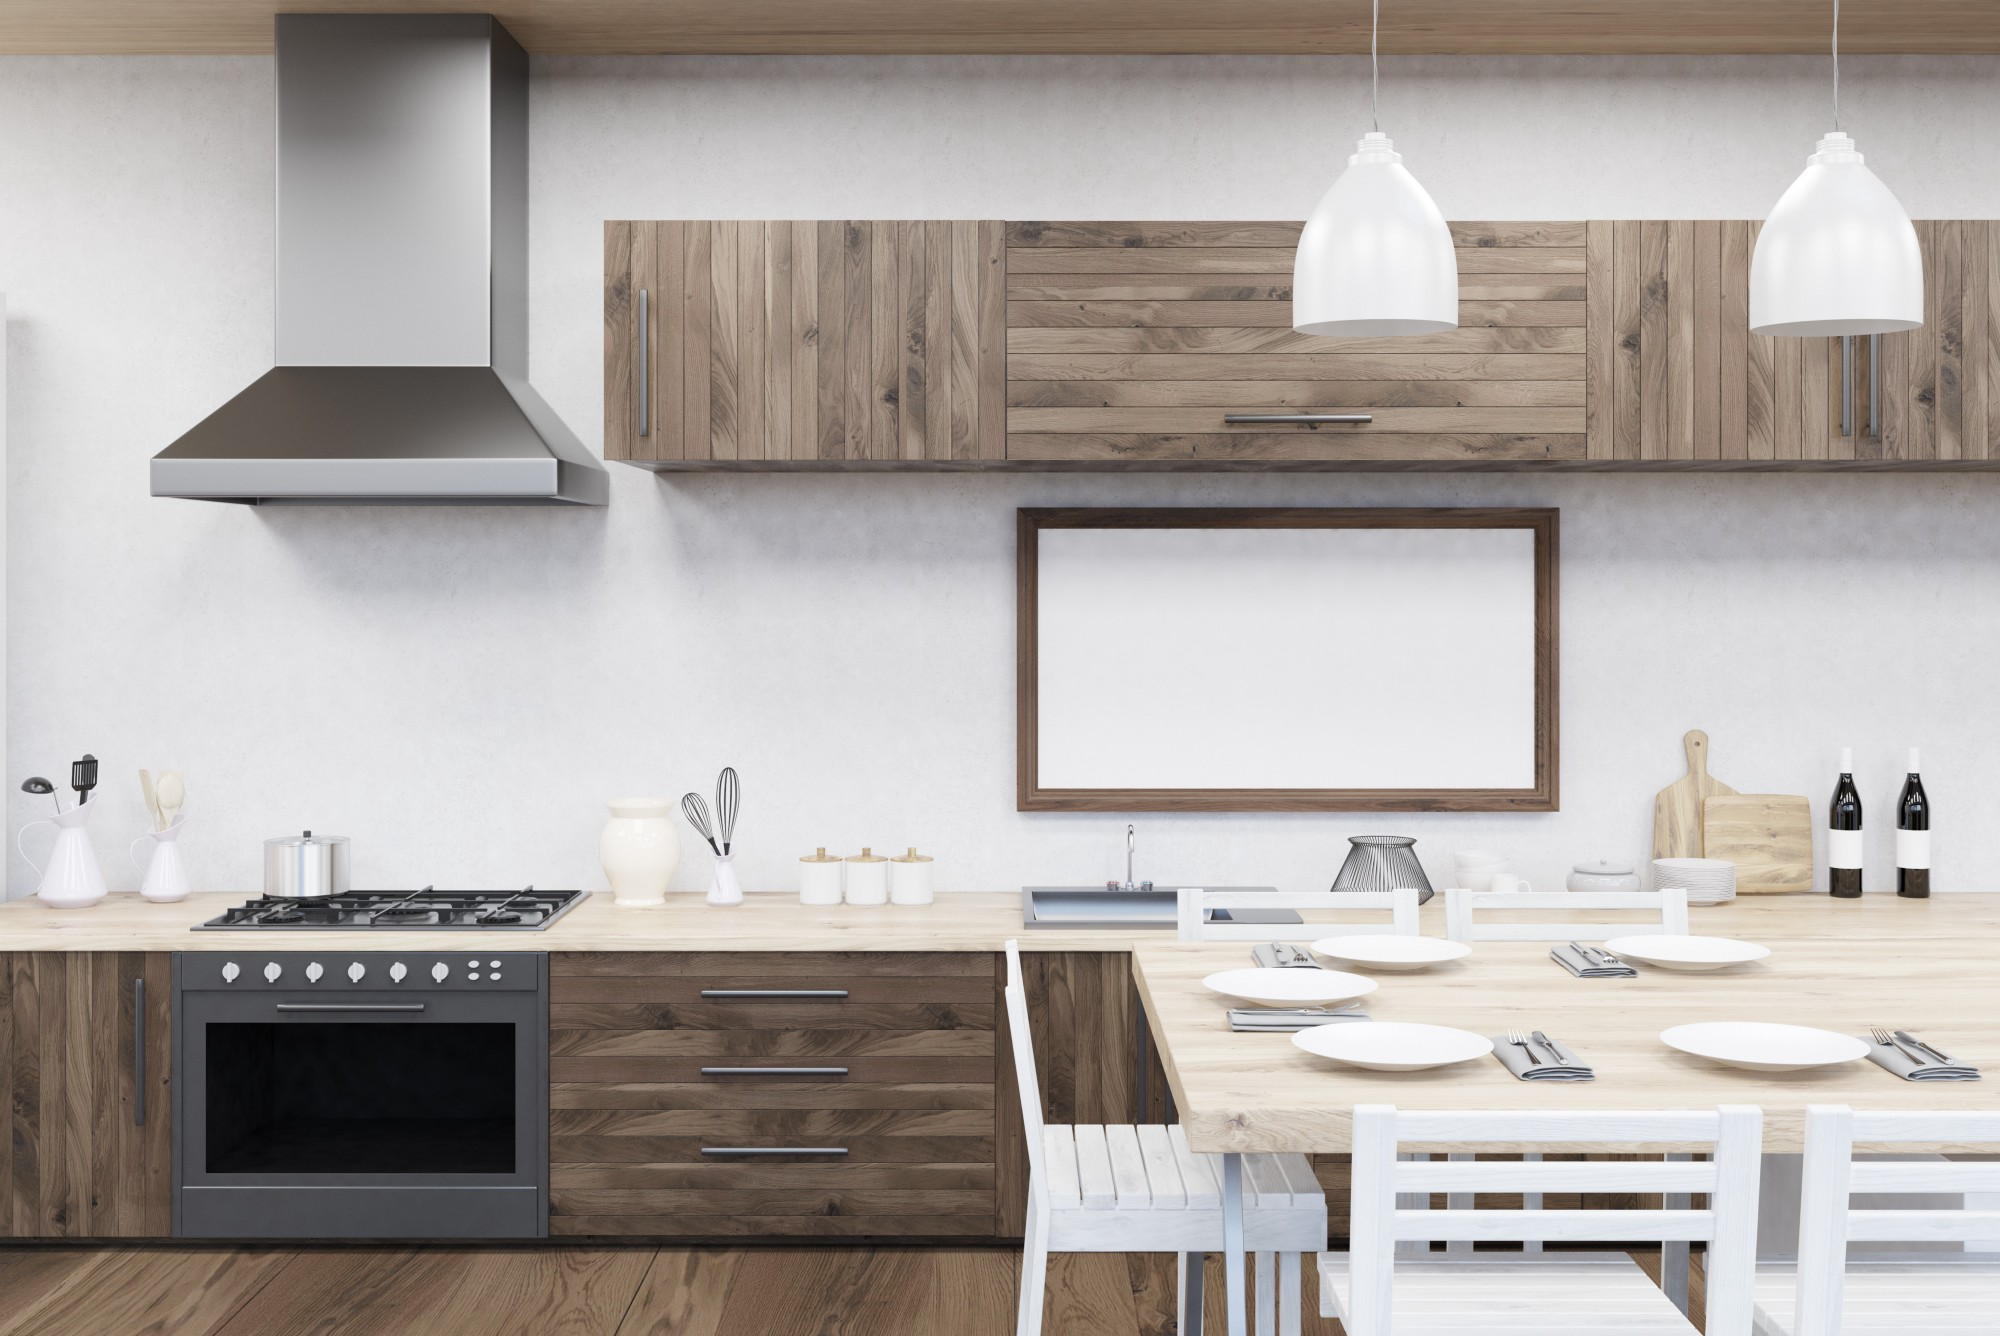 Pretty Are Most Minimal Ofall A Layout All Cabinets Appliances Are Linedup Pros Kitchen Layout Remodelmate Medium Small Spaces One Wall Kitchens Are Designed houzz-02 One Wall Kitchen